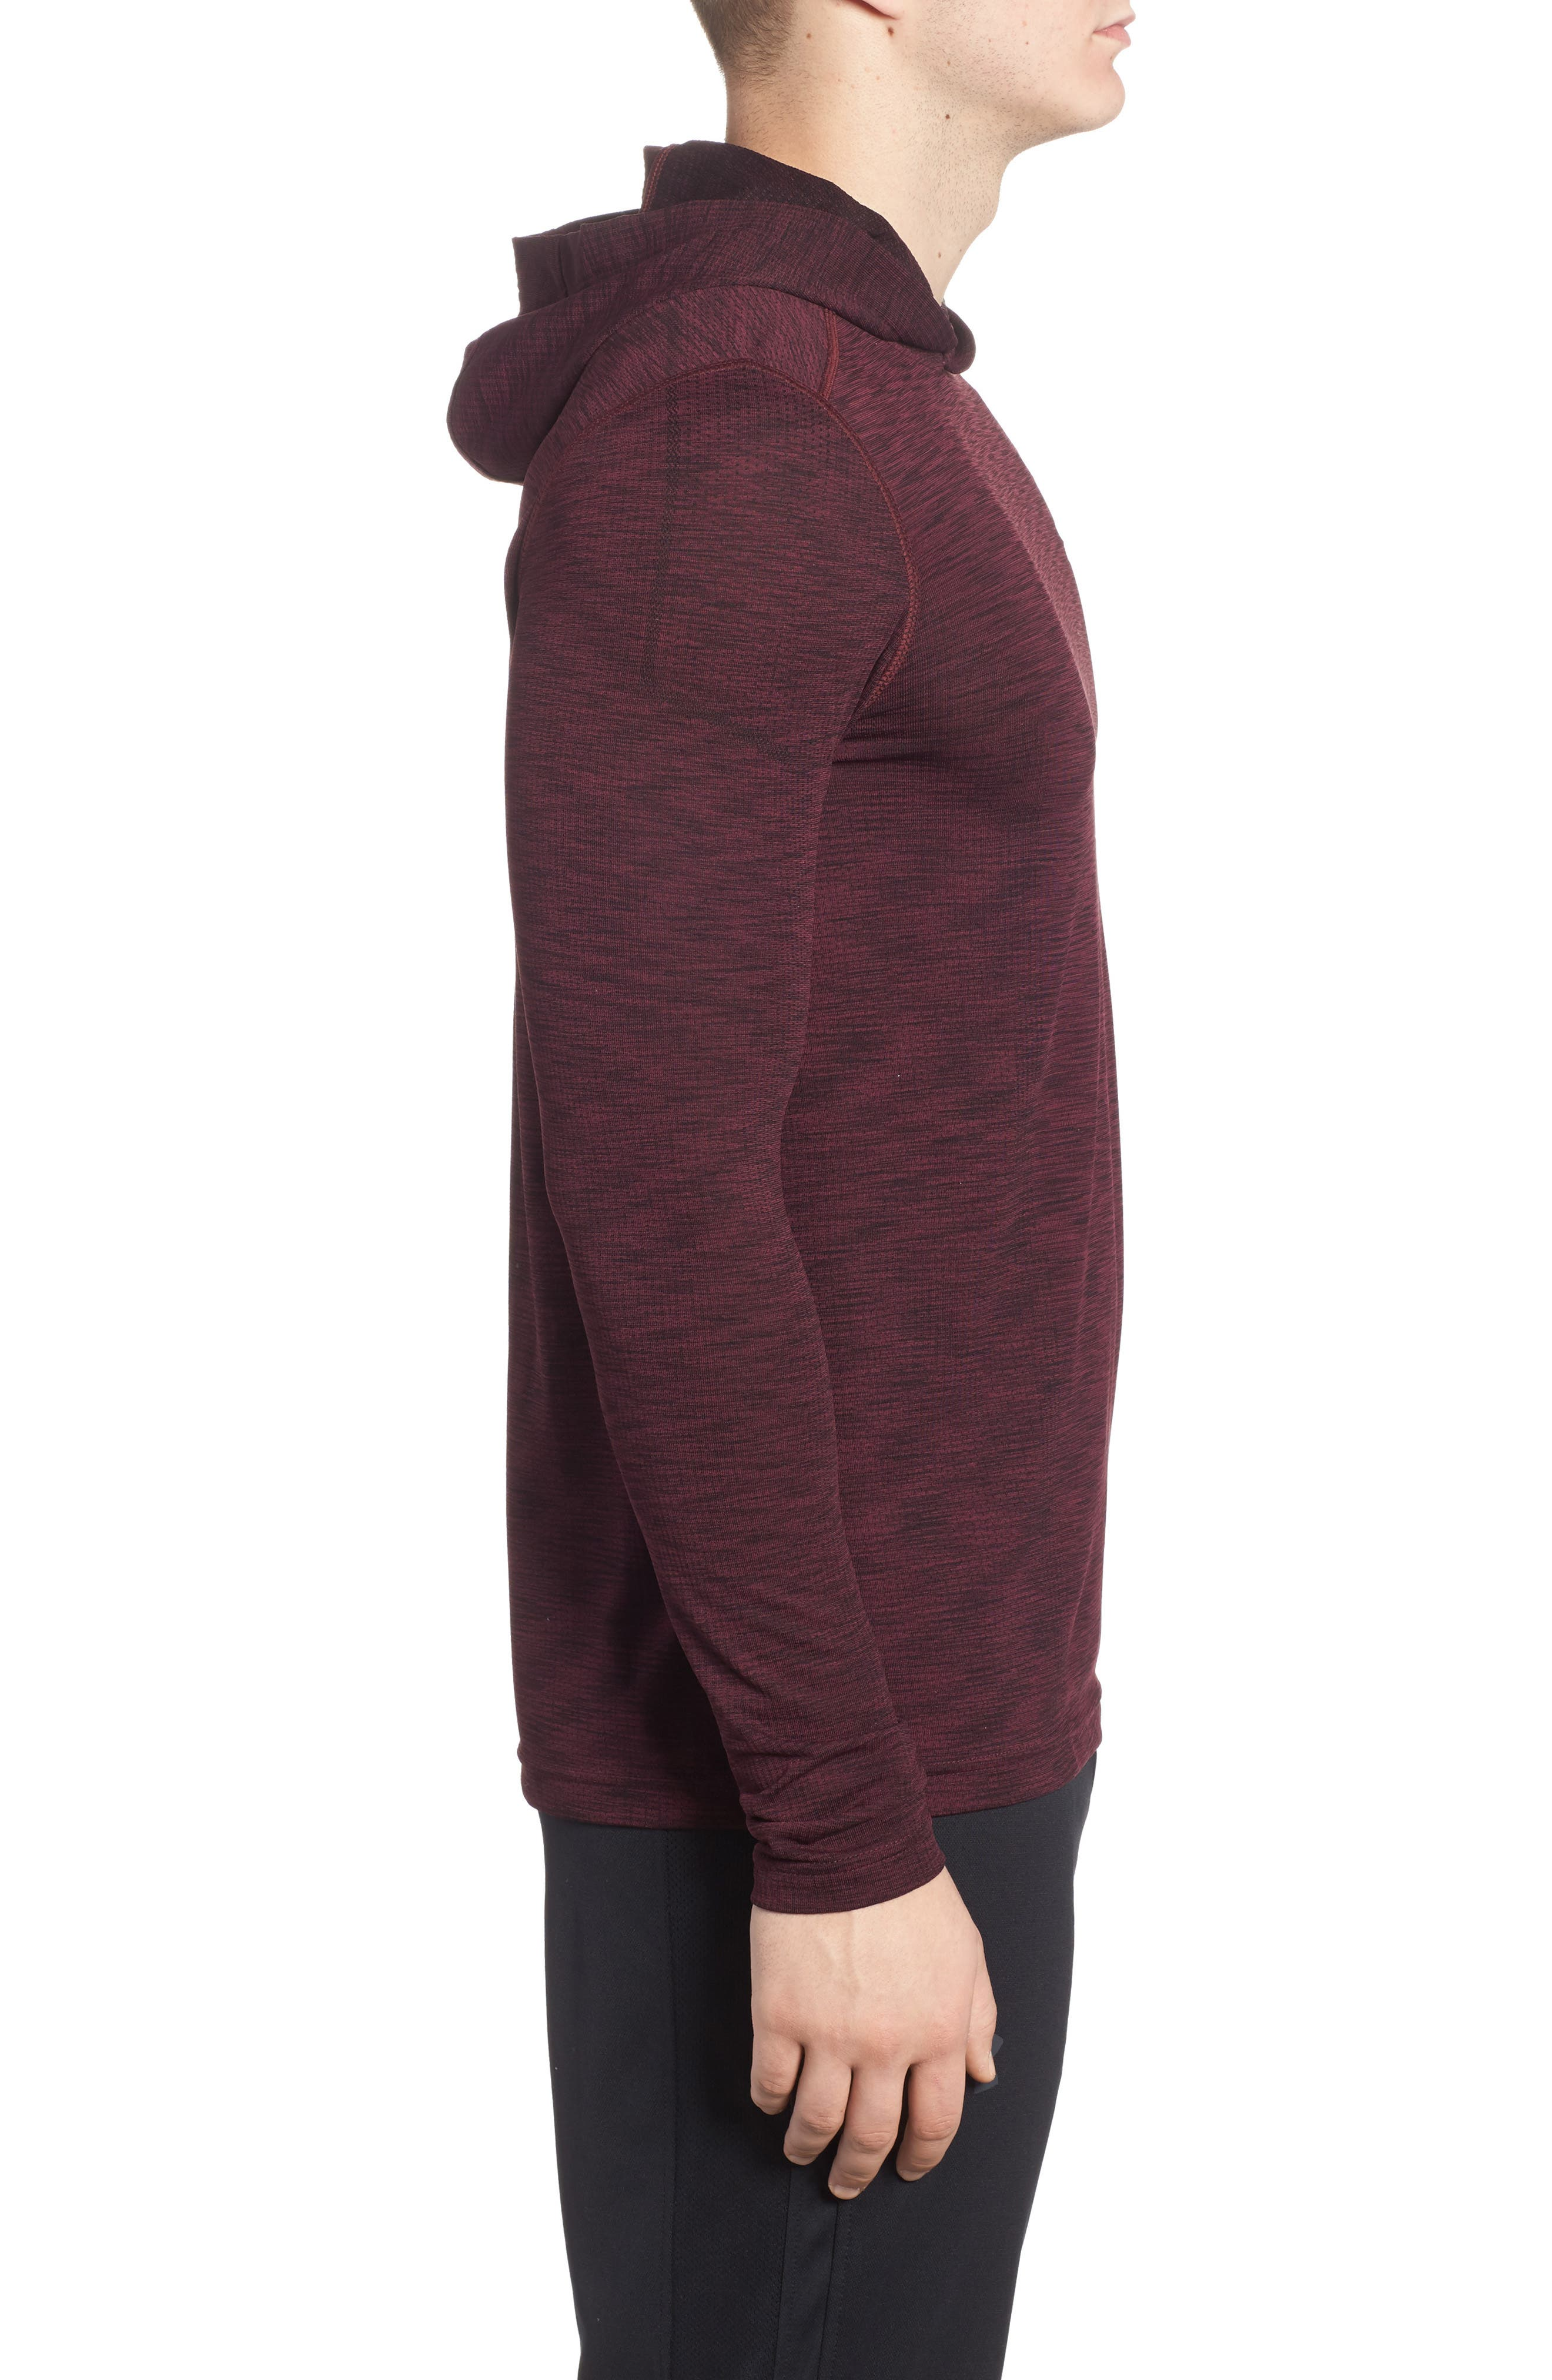 Threadbone Fitted Seamless Hoodie,                             Alternate thumbnail 3, color,                             Raisin Red / Stealth Grey